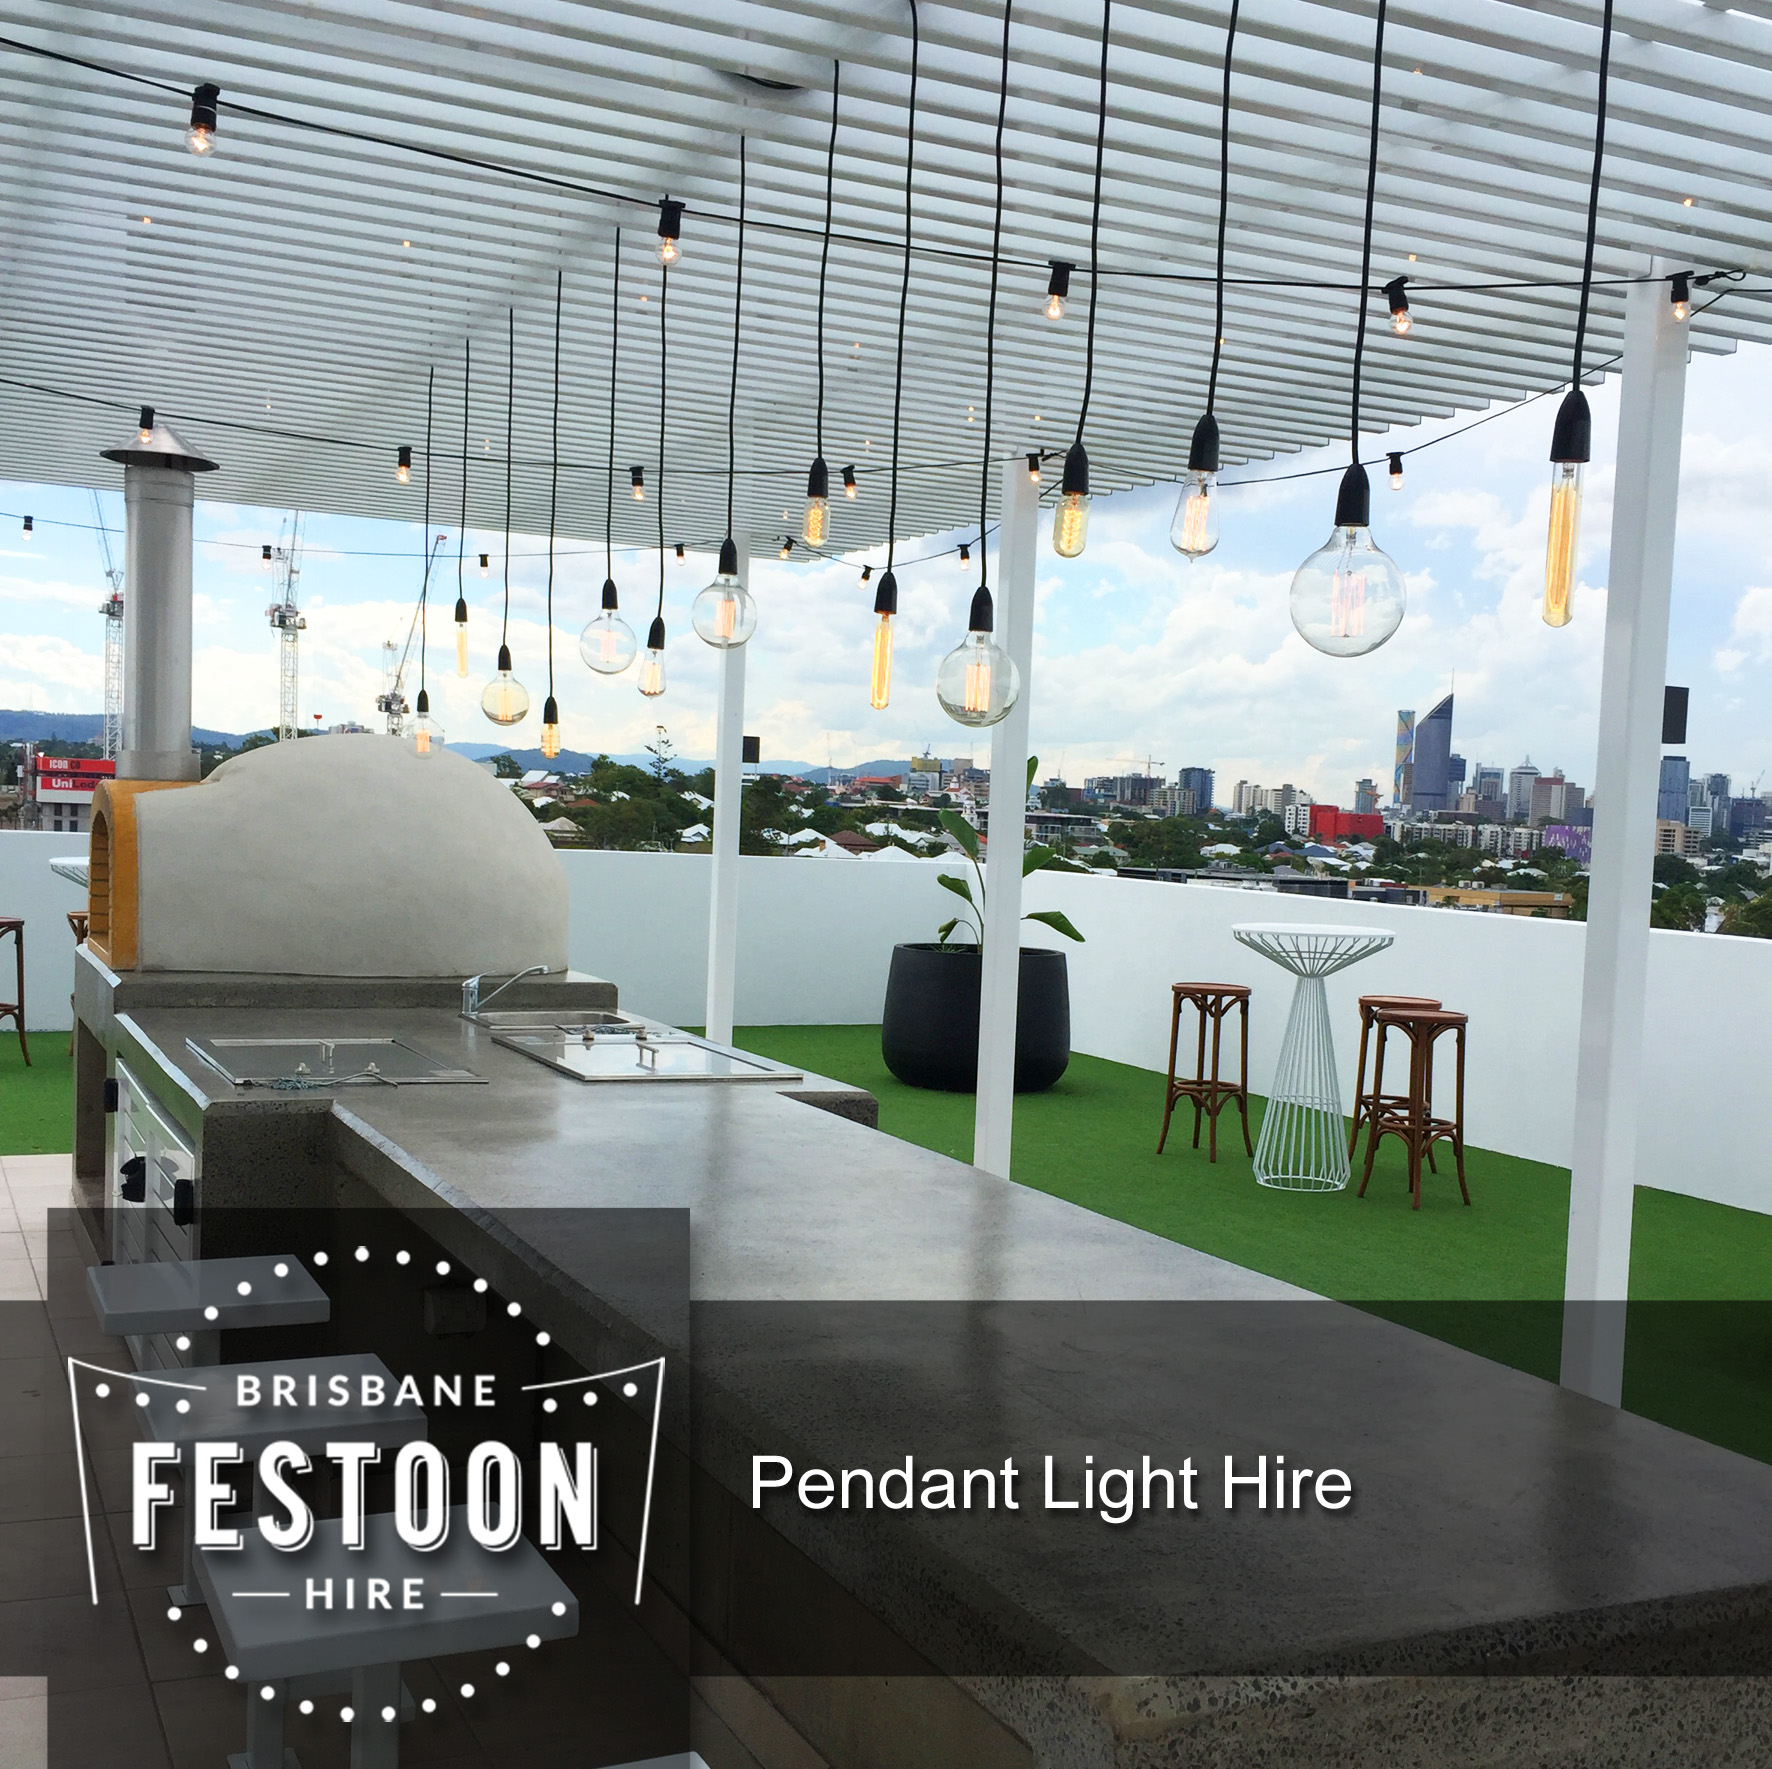 Brisbane Festoon Hire - Pendant Light Hire 4.jpg